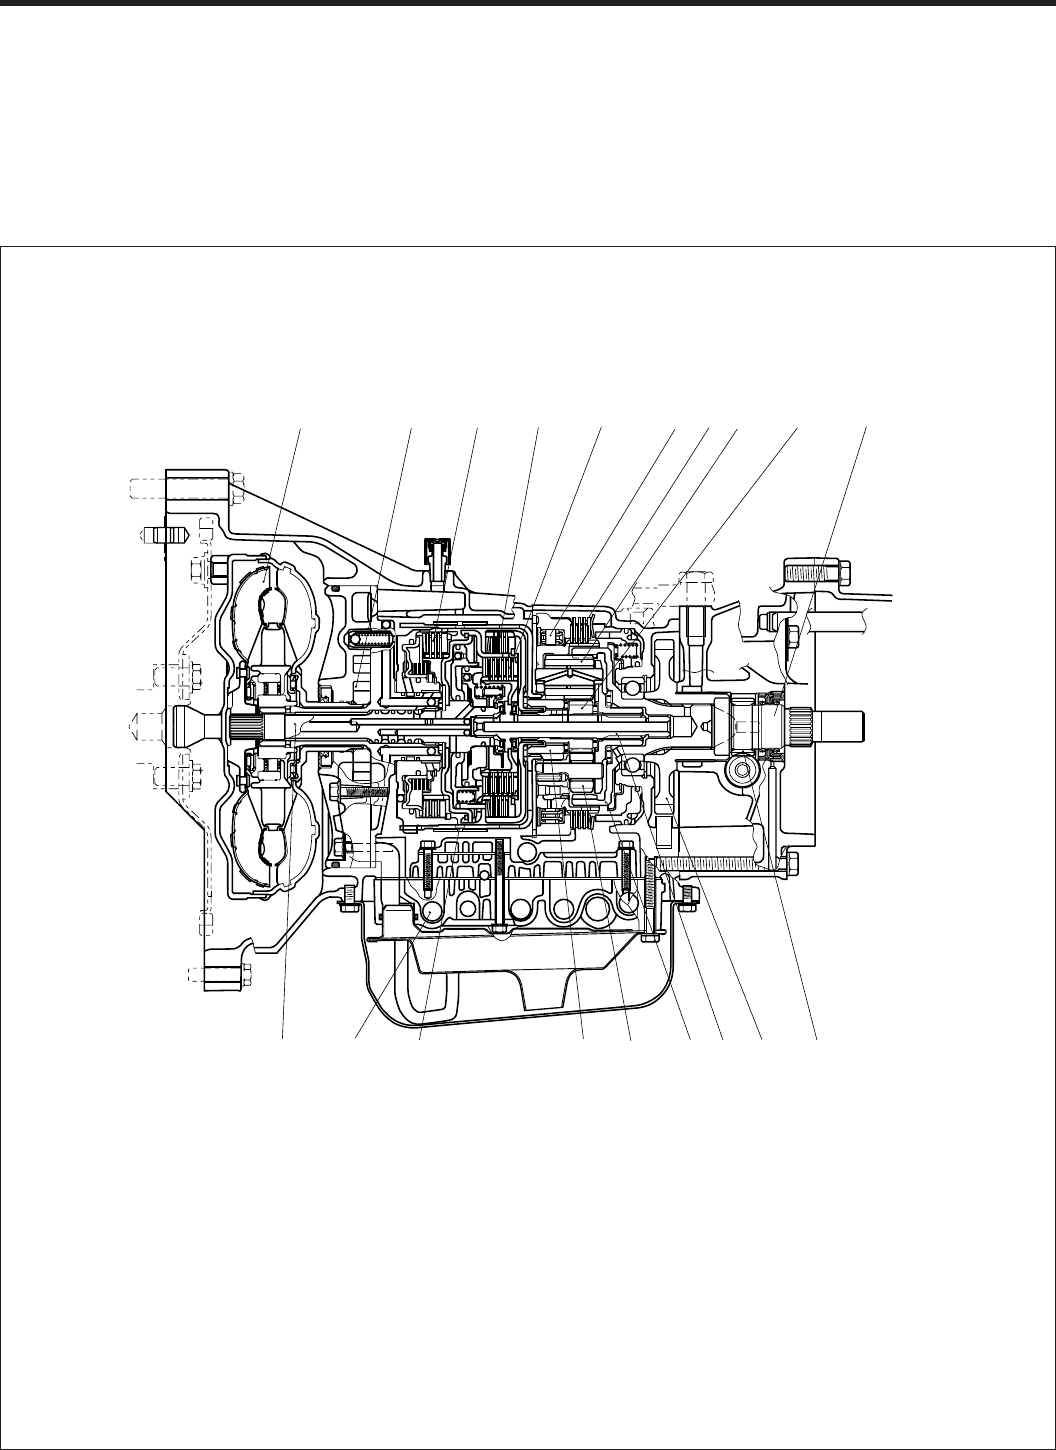 Daihatsu Terios Workshop Manual PDF